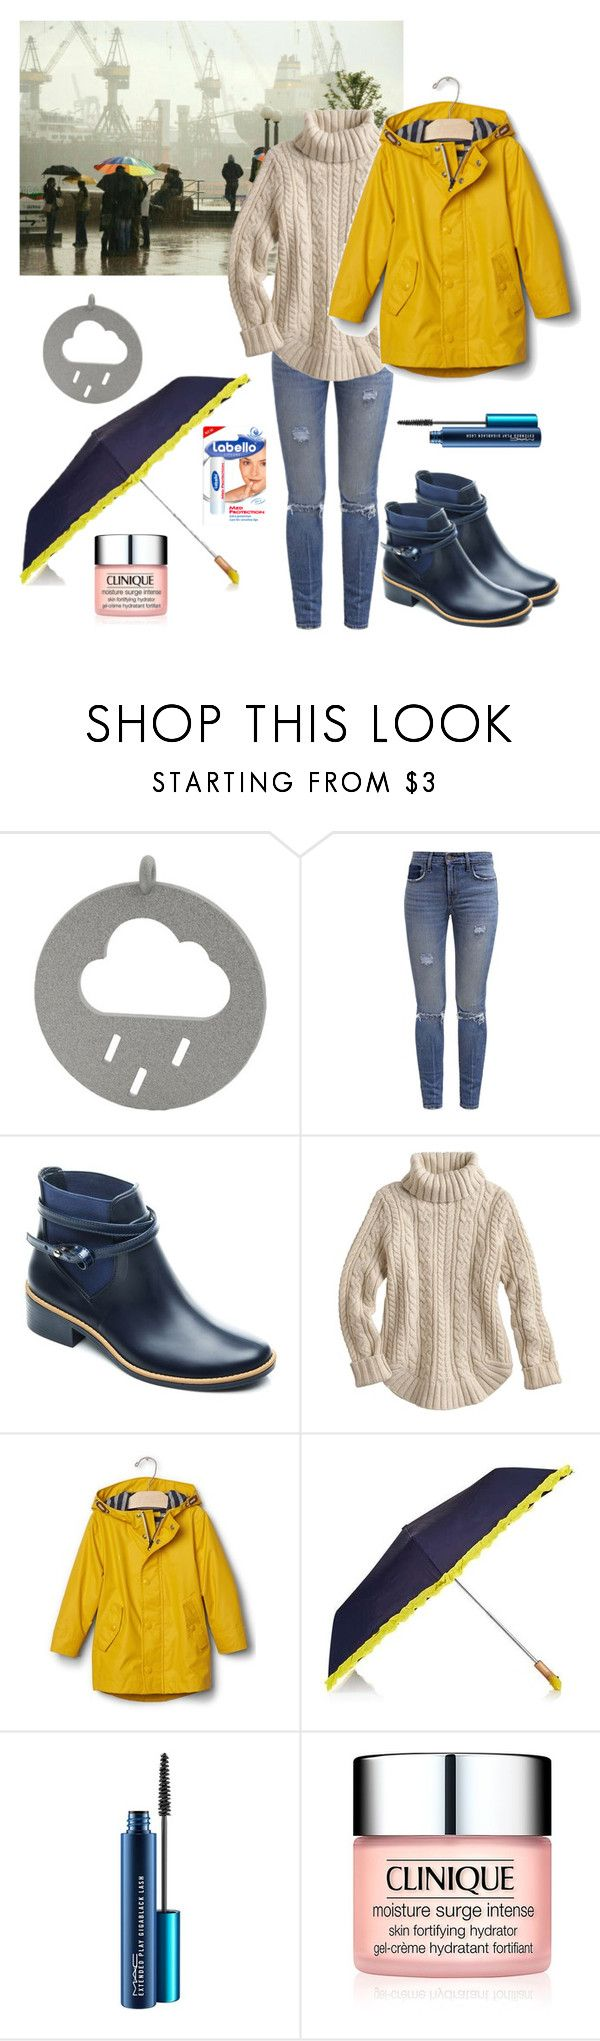 """Hamburg, 8 degrees, rain"" by confusioninme ❤ liked on Polyvore featuring Levi's, Bernardo, Gap, Topshop, MAC Cosmetics and Clinique"